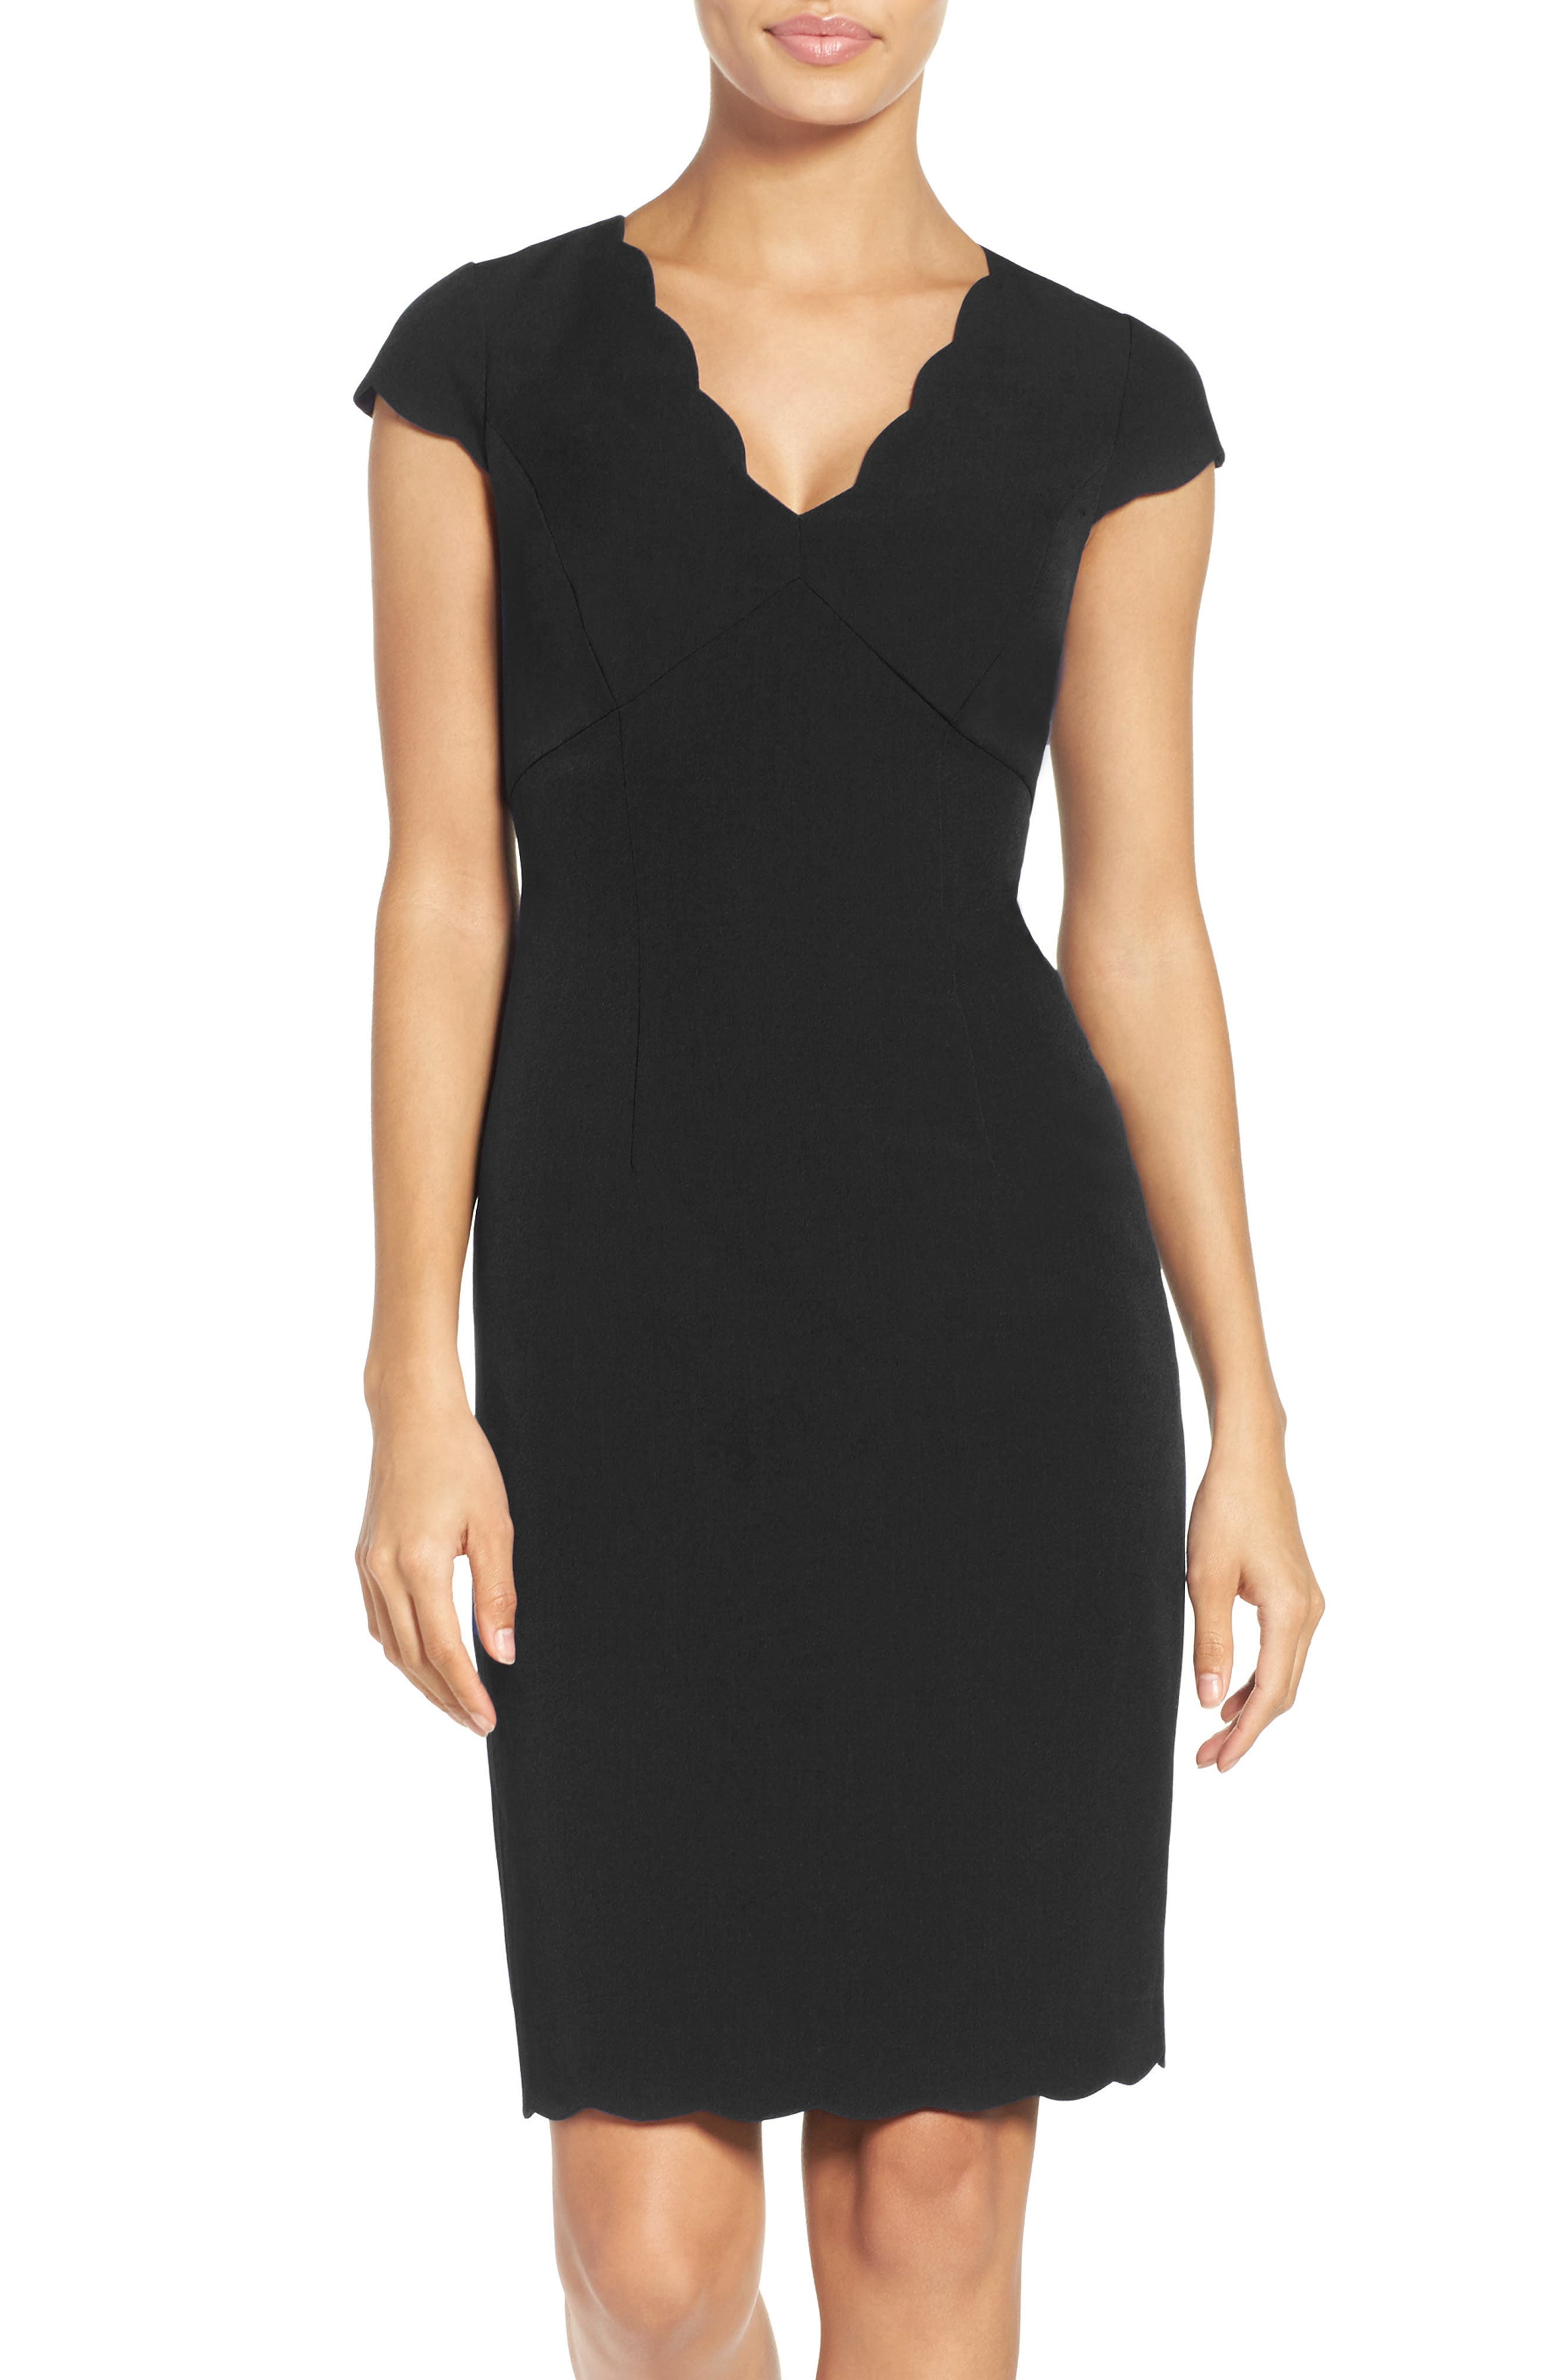 Alternate Image 1 Selected - Adrianna Papell Scalloped Crepe Sheath Dress (Regular & Petite)